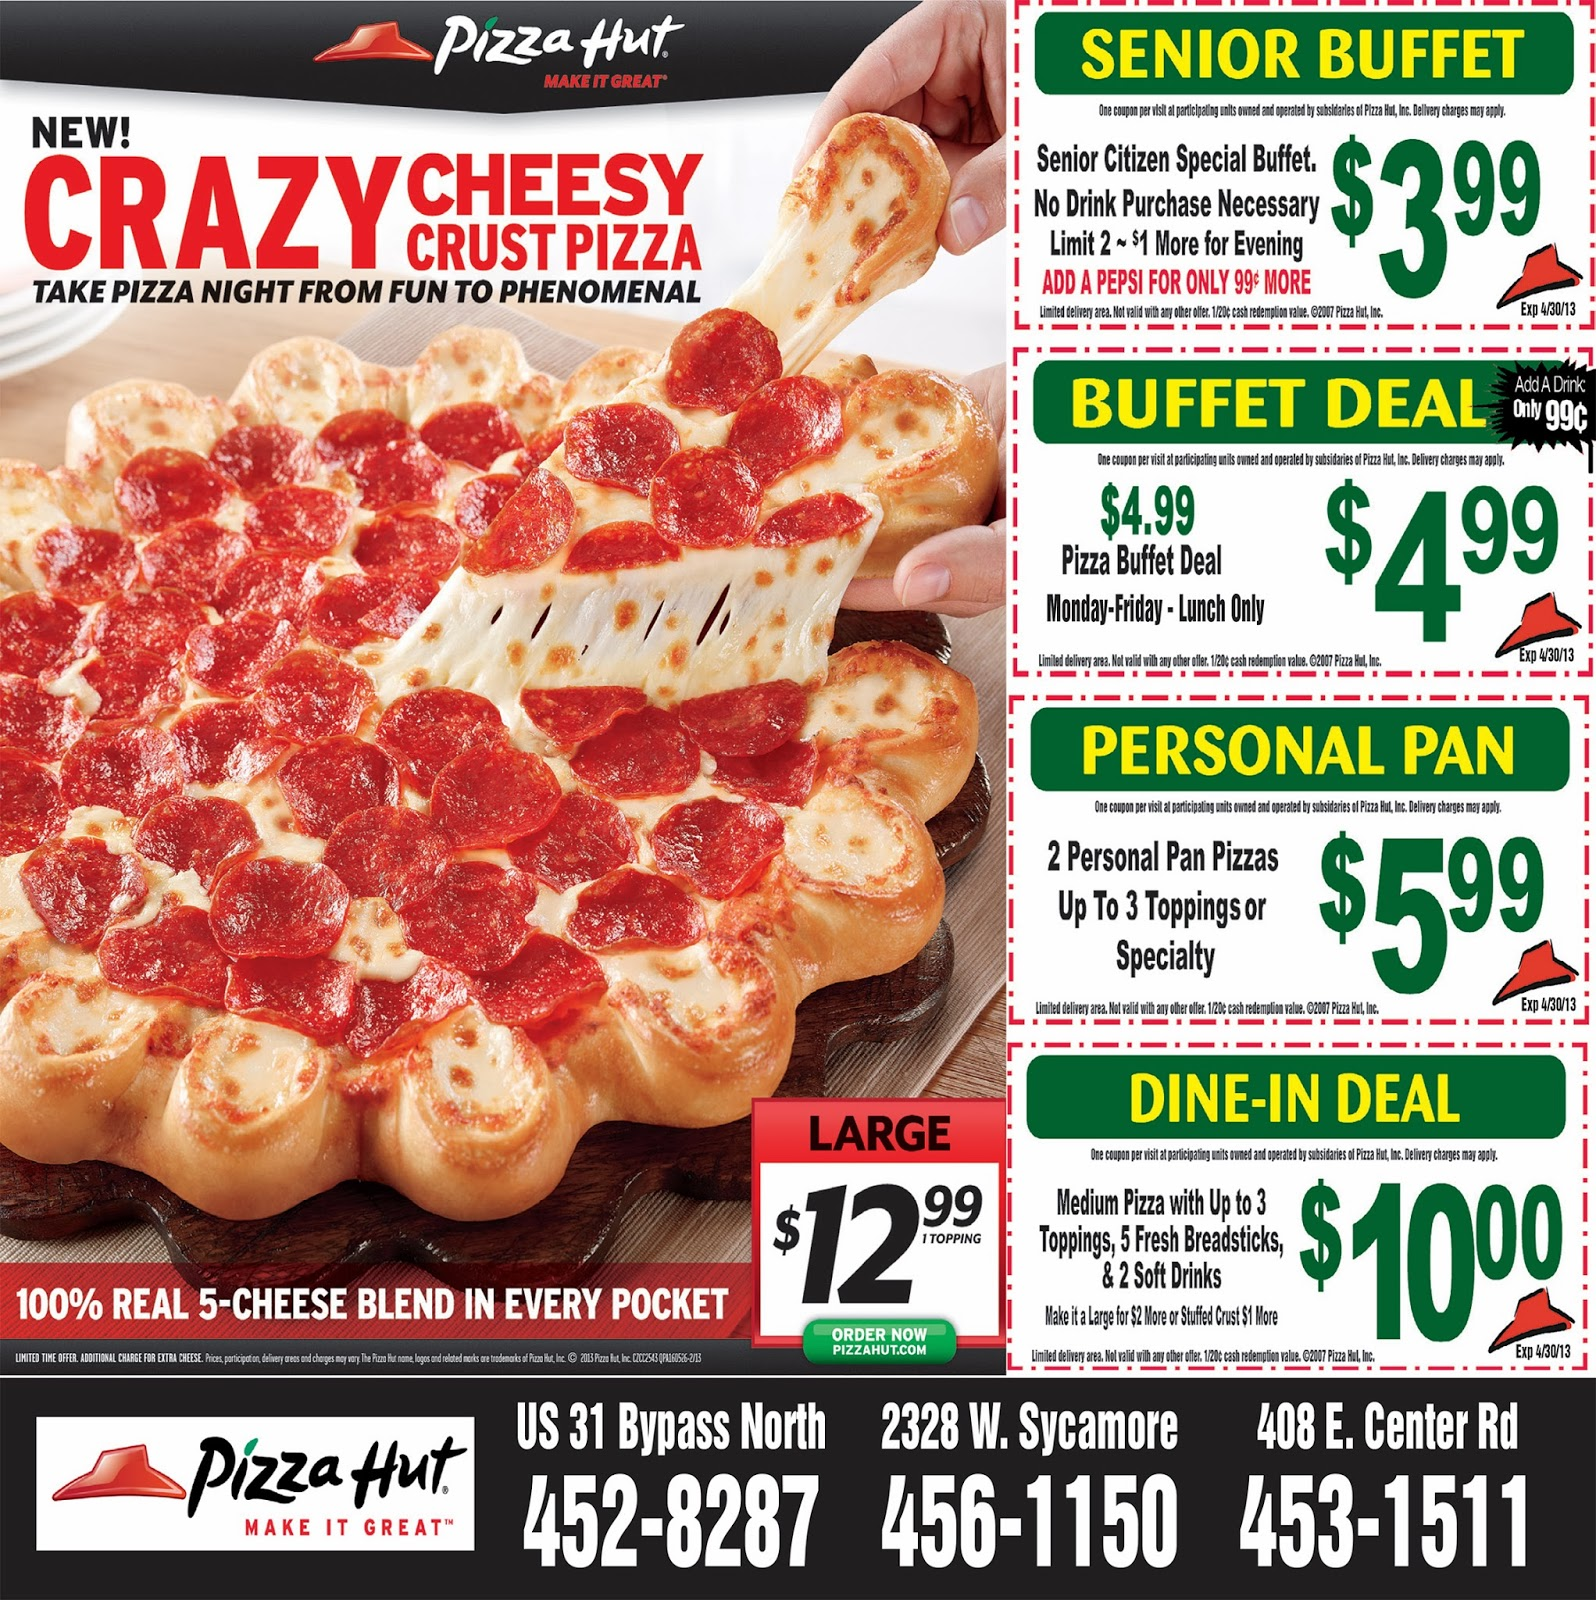 Pizza Hut – home of America's favorite pizza, delivering delicious hot pizza and WingStreet buffalo wings straight to your door. Check out the best Pizza Hut coupons for 20% off your first order, up to 50% off pizza deals, and more specials.